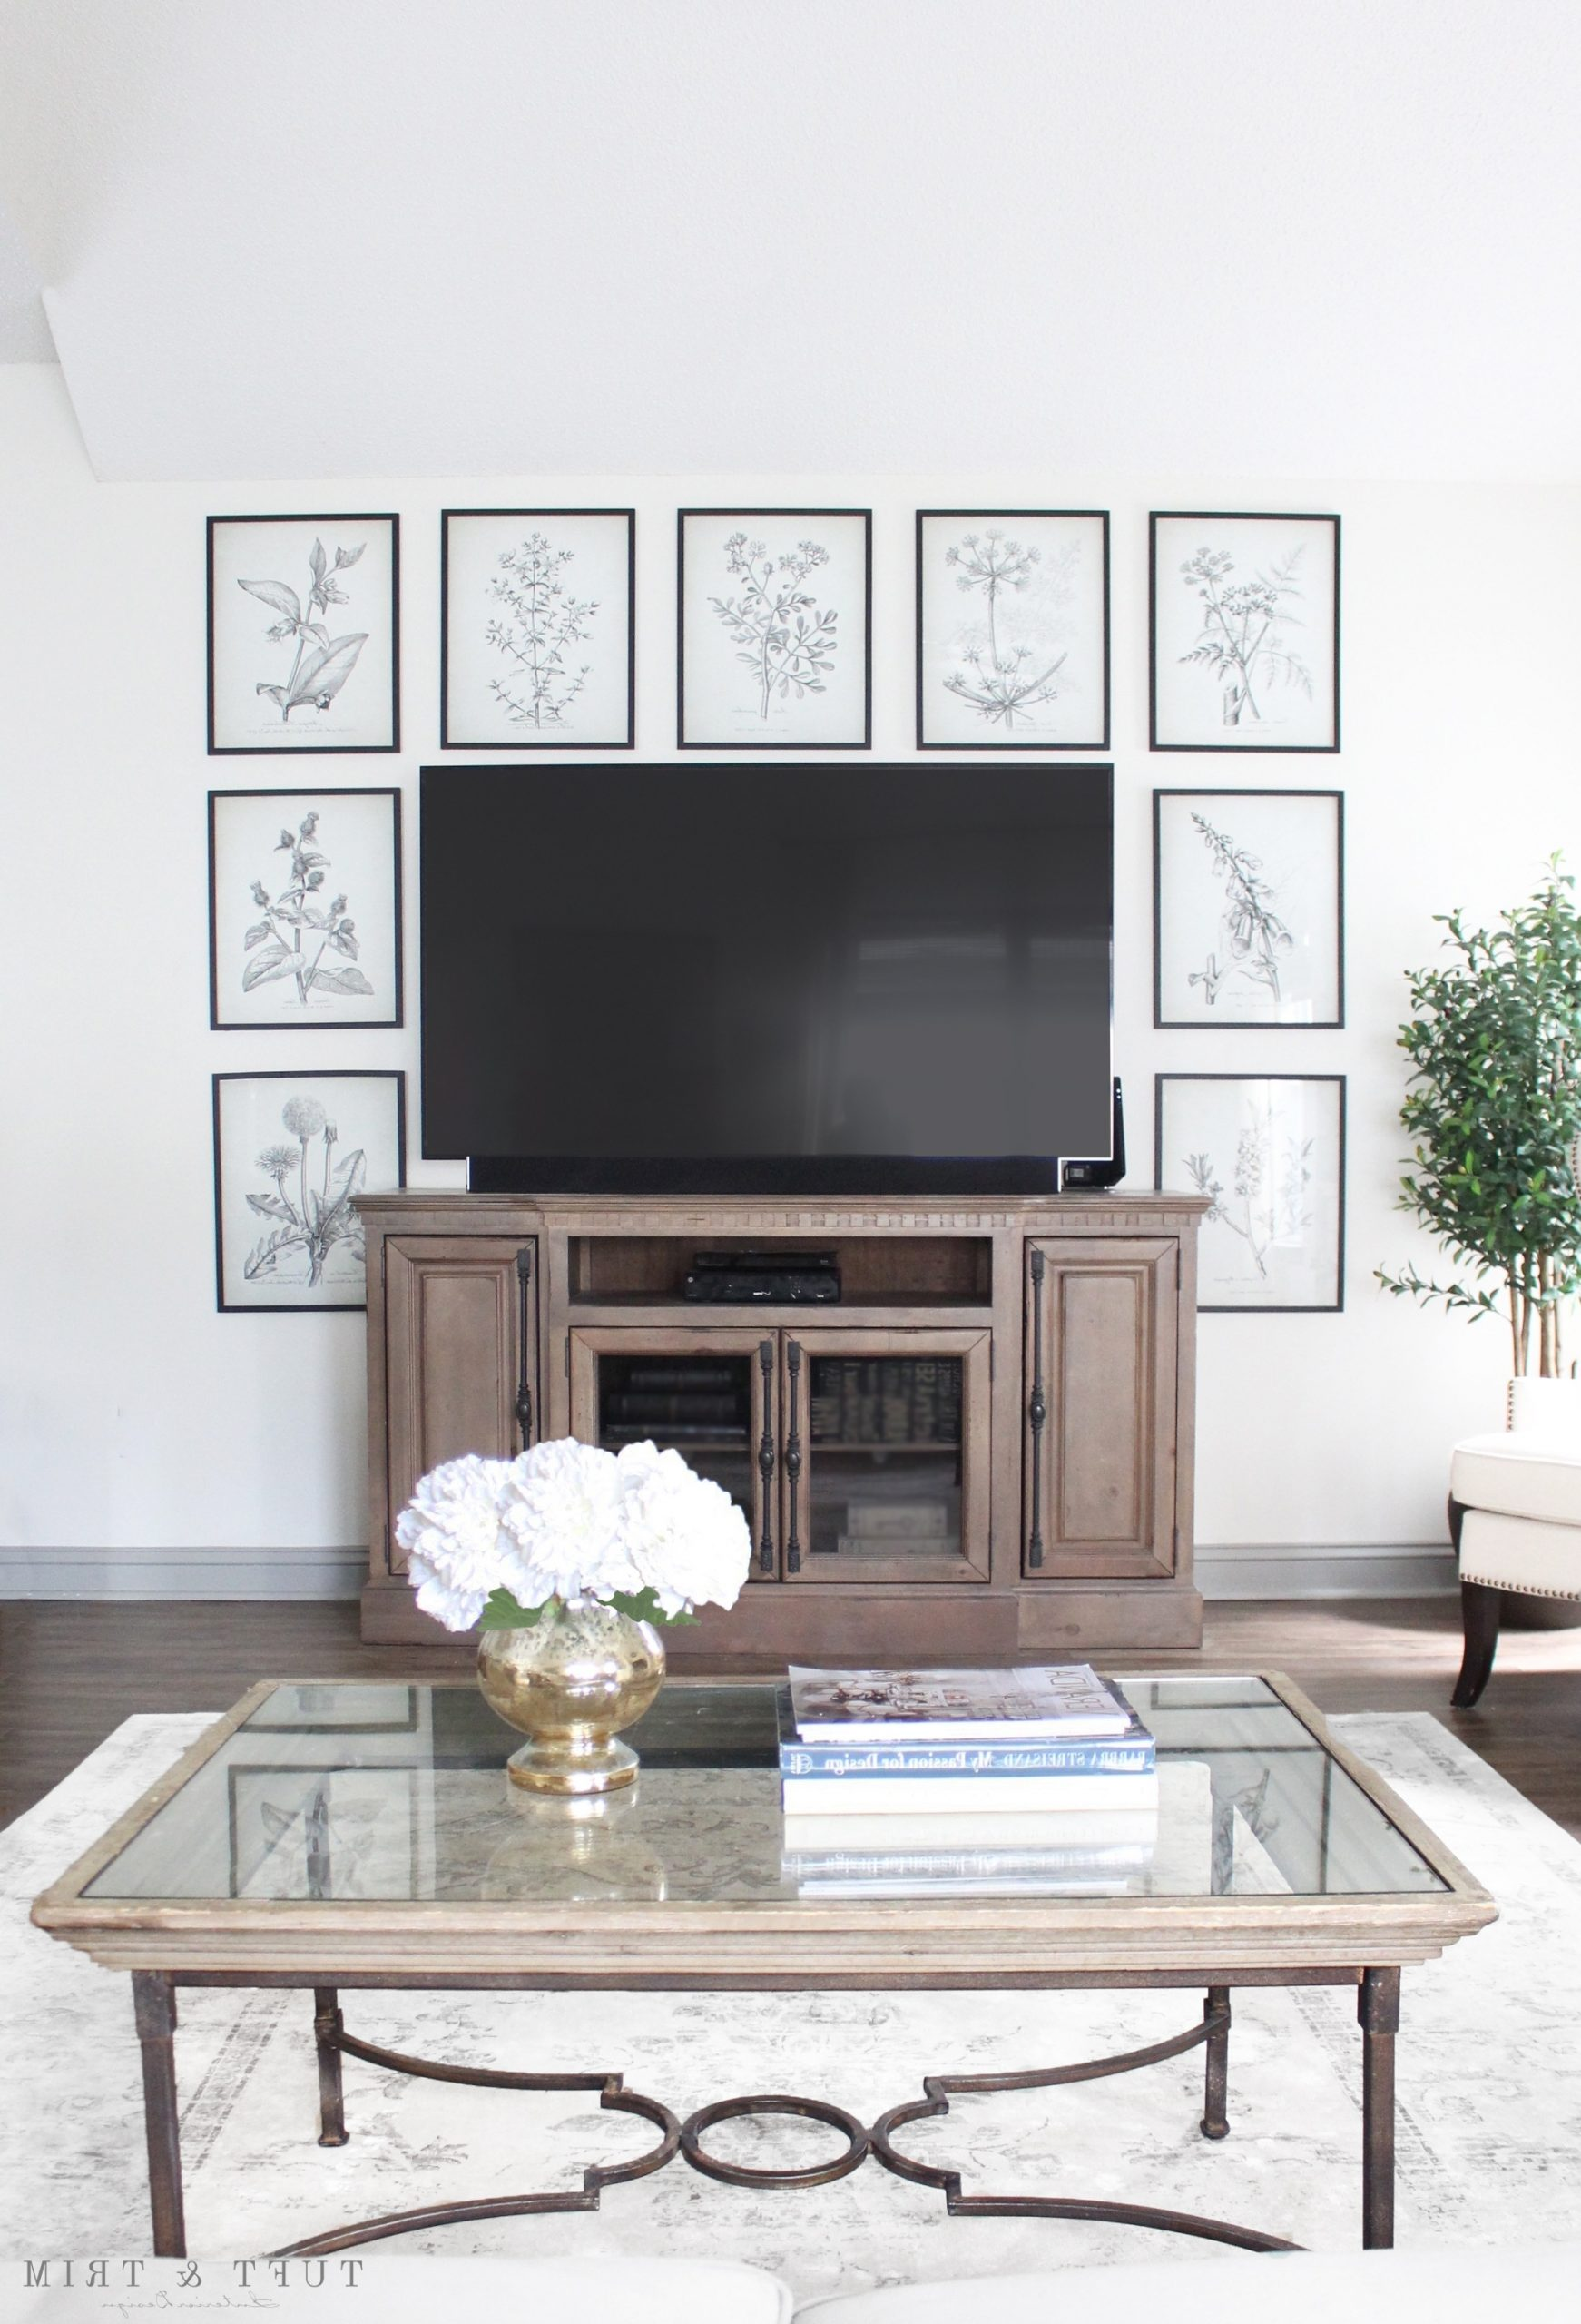 8 Creative Ways To Decorate Around Your Tv Tuft & Trim Decorating Living Room With Flat Screen Tv